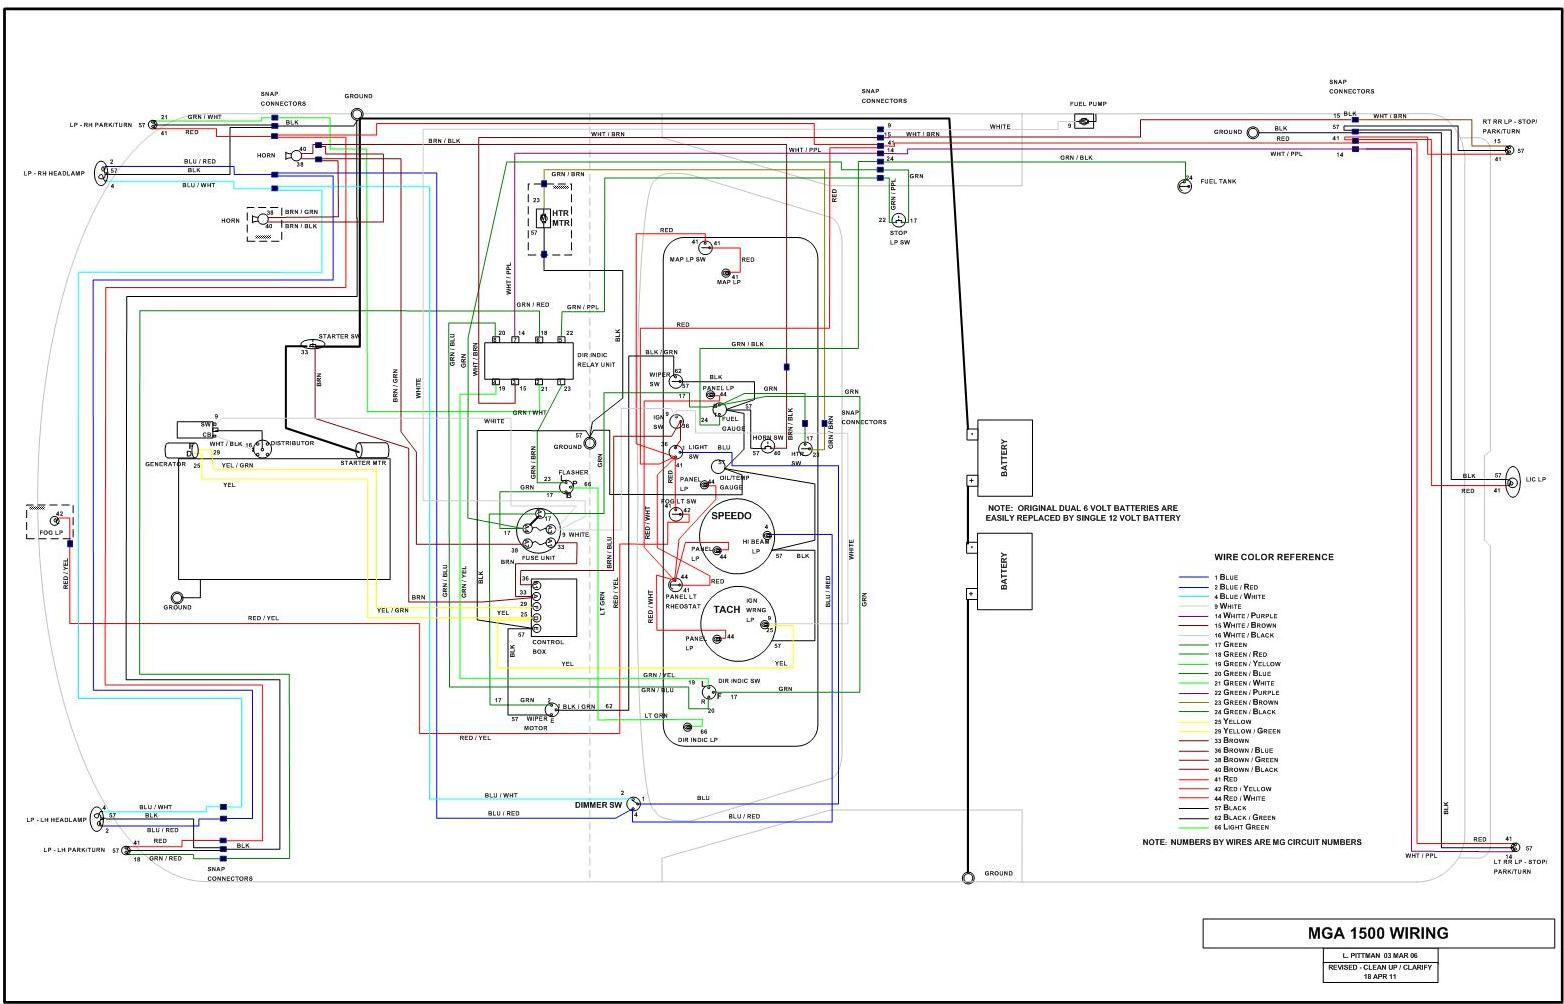 hight resolution of mga subassembly wiring rh larrysmga net 1959 mga wiring diagram 1958 mga wiring diagram